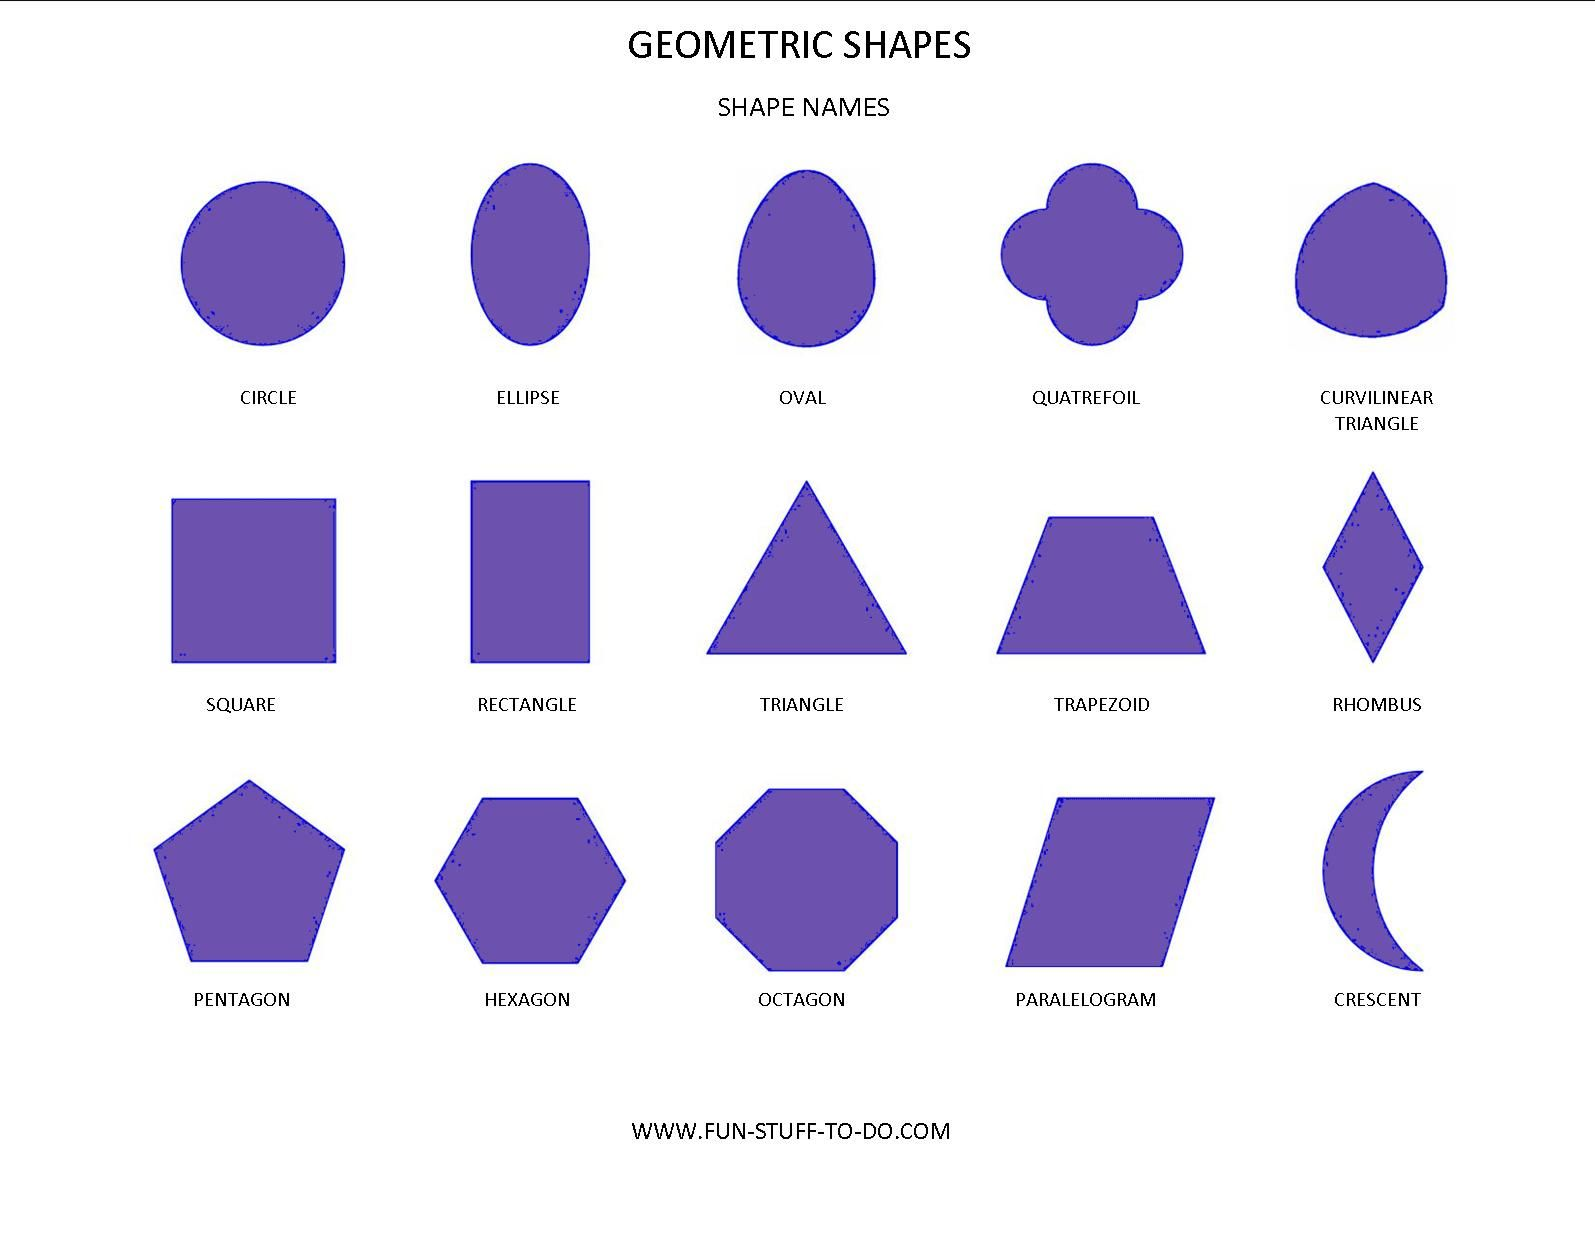 Image Result For Fun Stuff To Do Images Geometric Shape Names